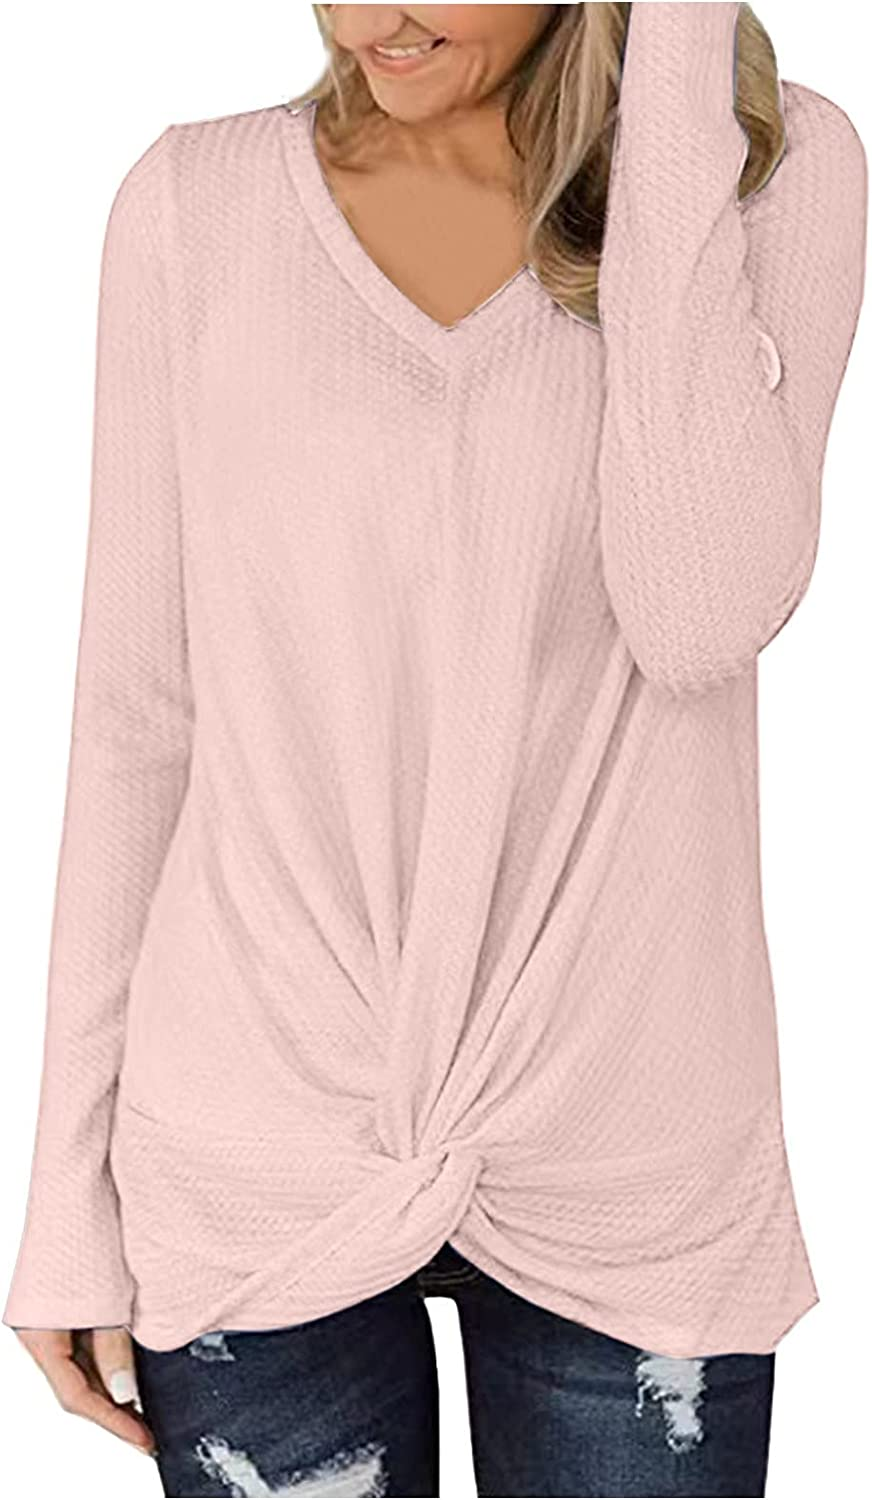 Long Sleeve Blouse for Women, V Neck Casual Loose Solid Color Front Twist Knot Tunics Sweatshirts Top